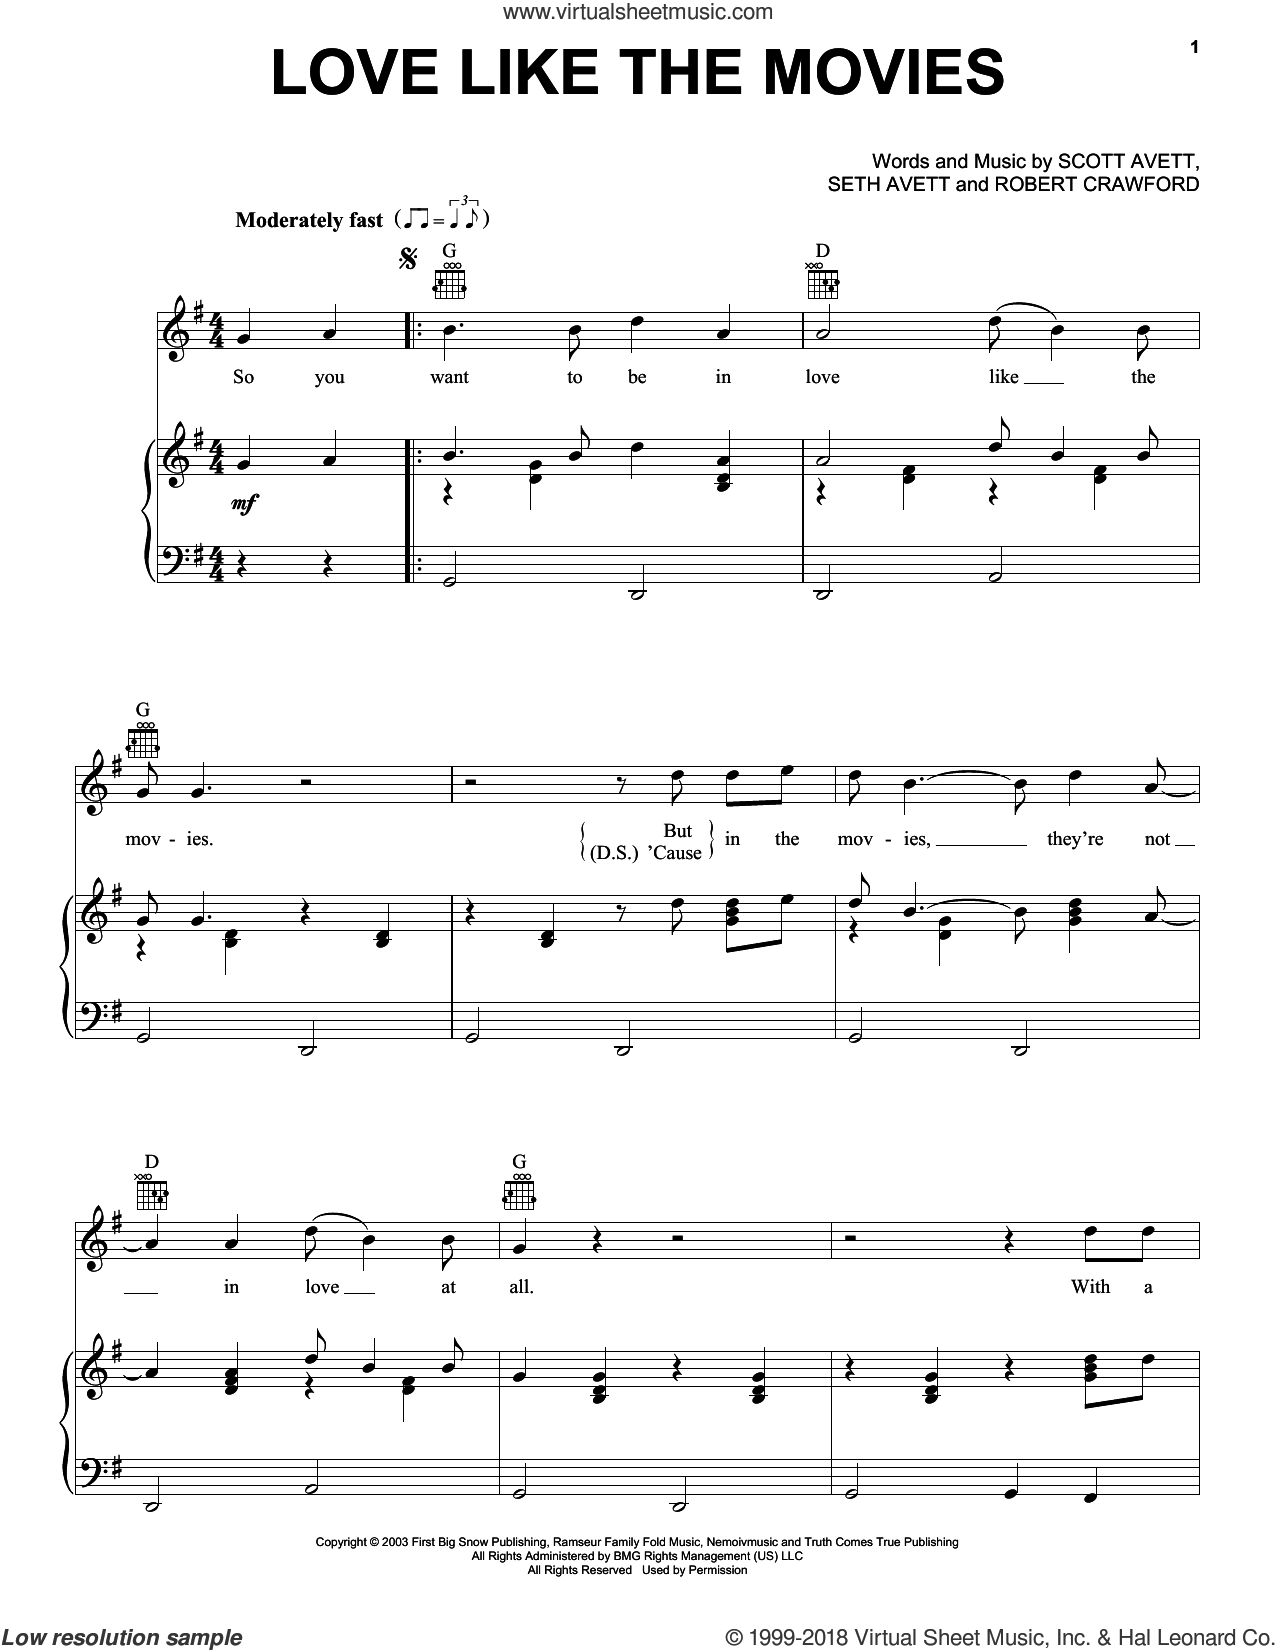 Love Like The Movies sheet music for voice, piano or guitar by The Avett Brothers, Avett Brothers, Robert Crawford, Scott Avett and Seth Avett, intermediate skill level